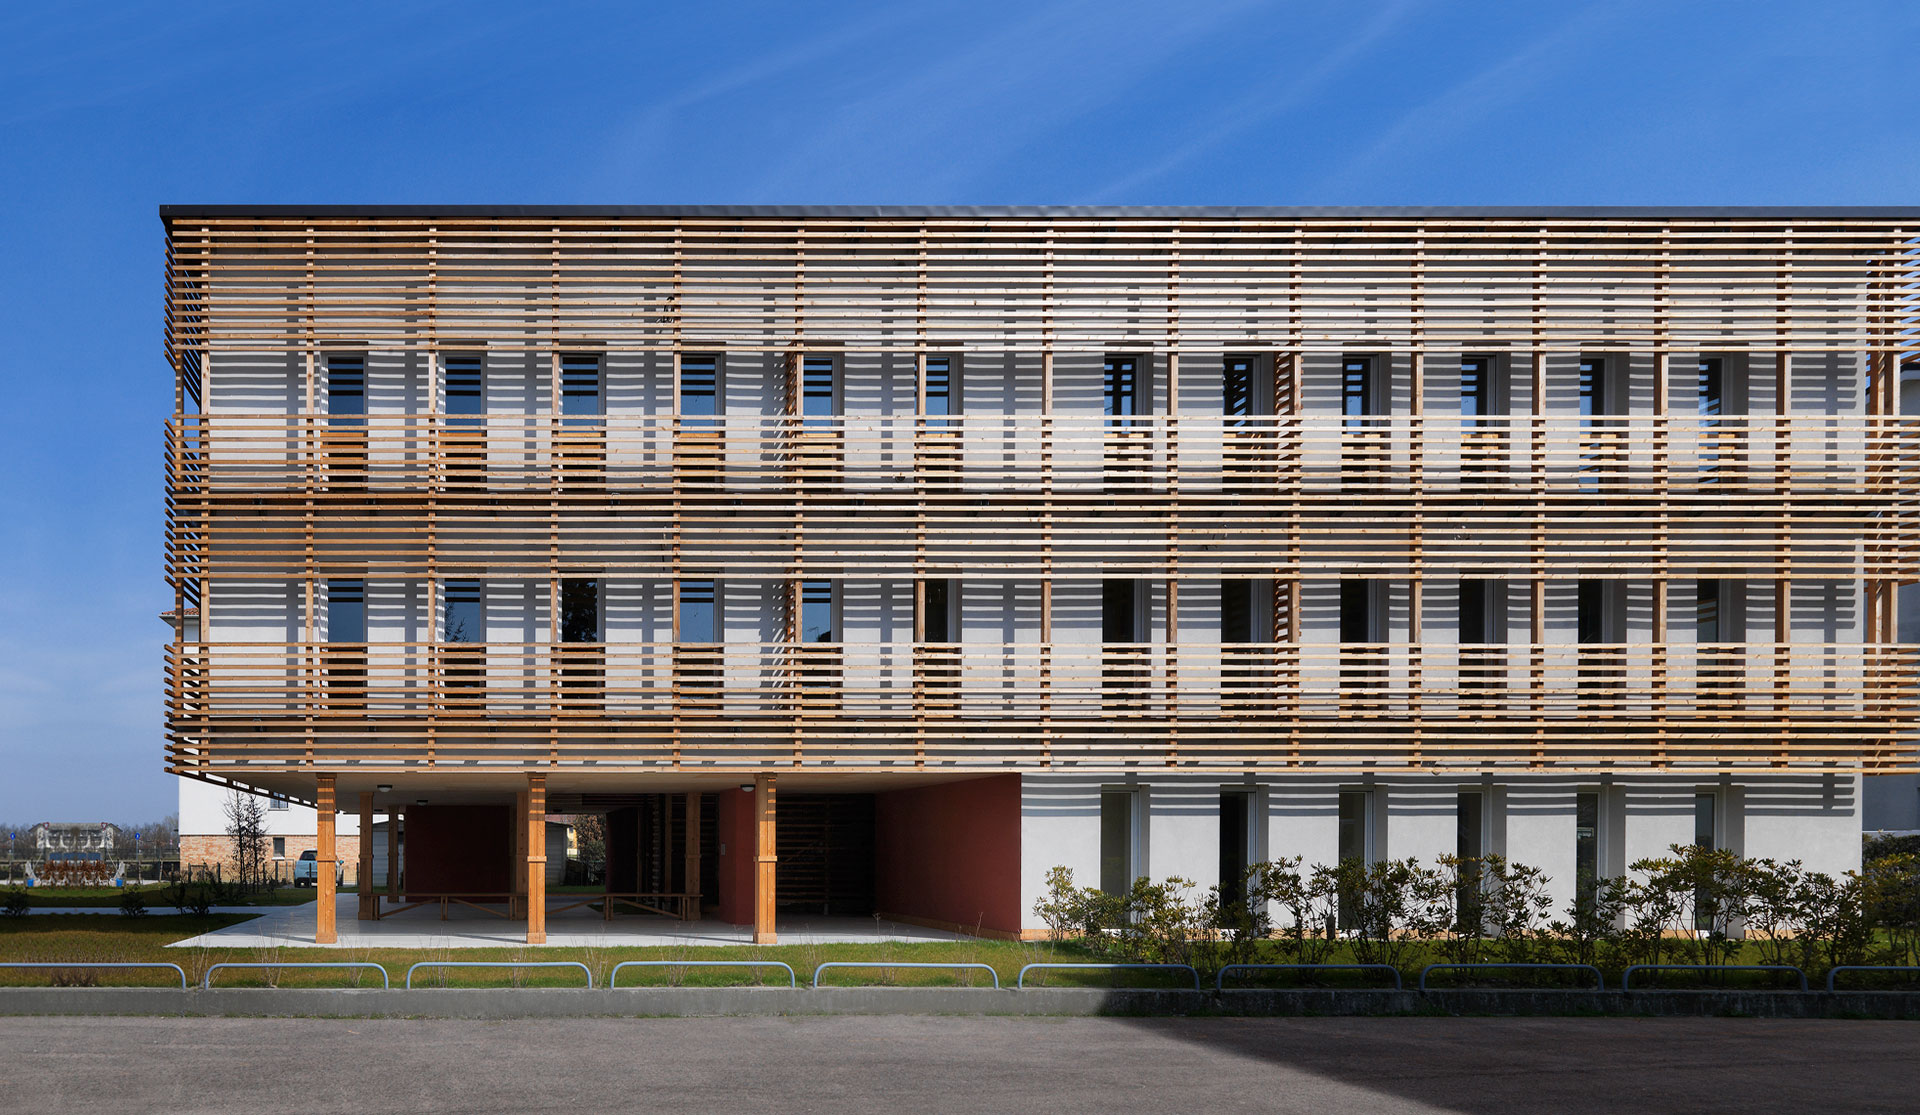 Social Housing, Motta di Livenza, Treviso (IT), 2006–10